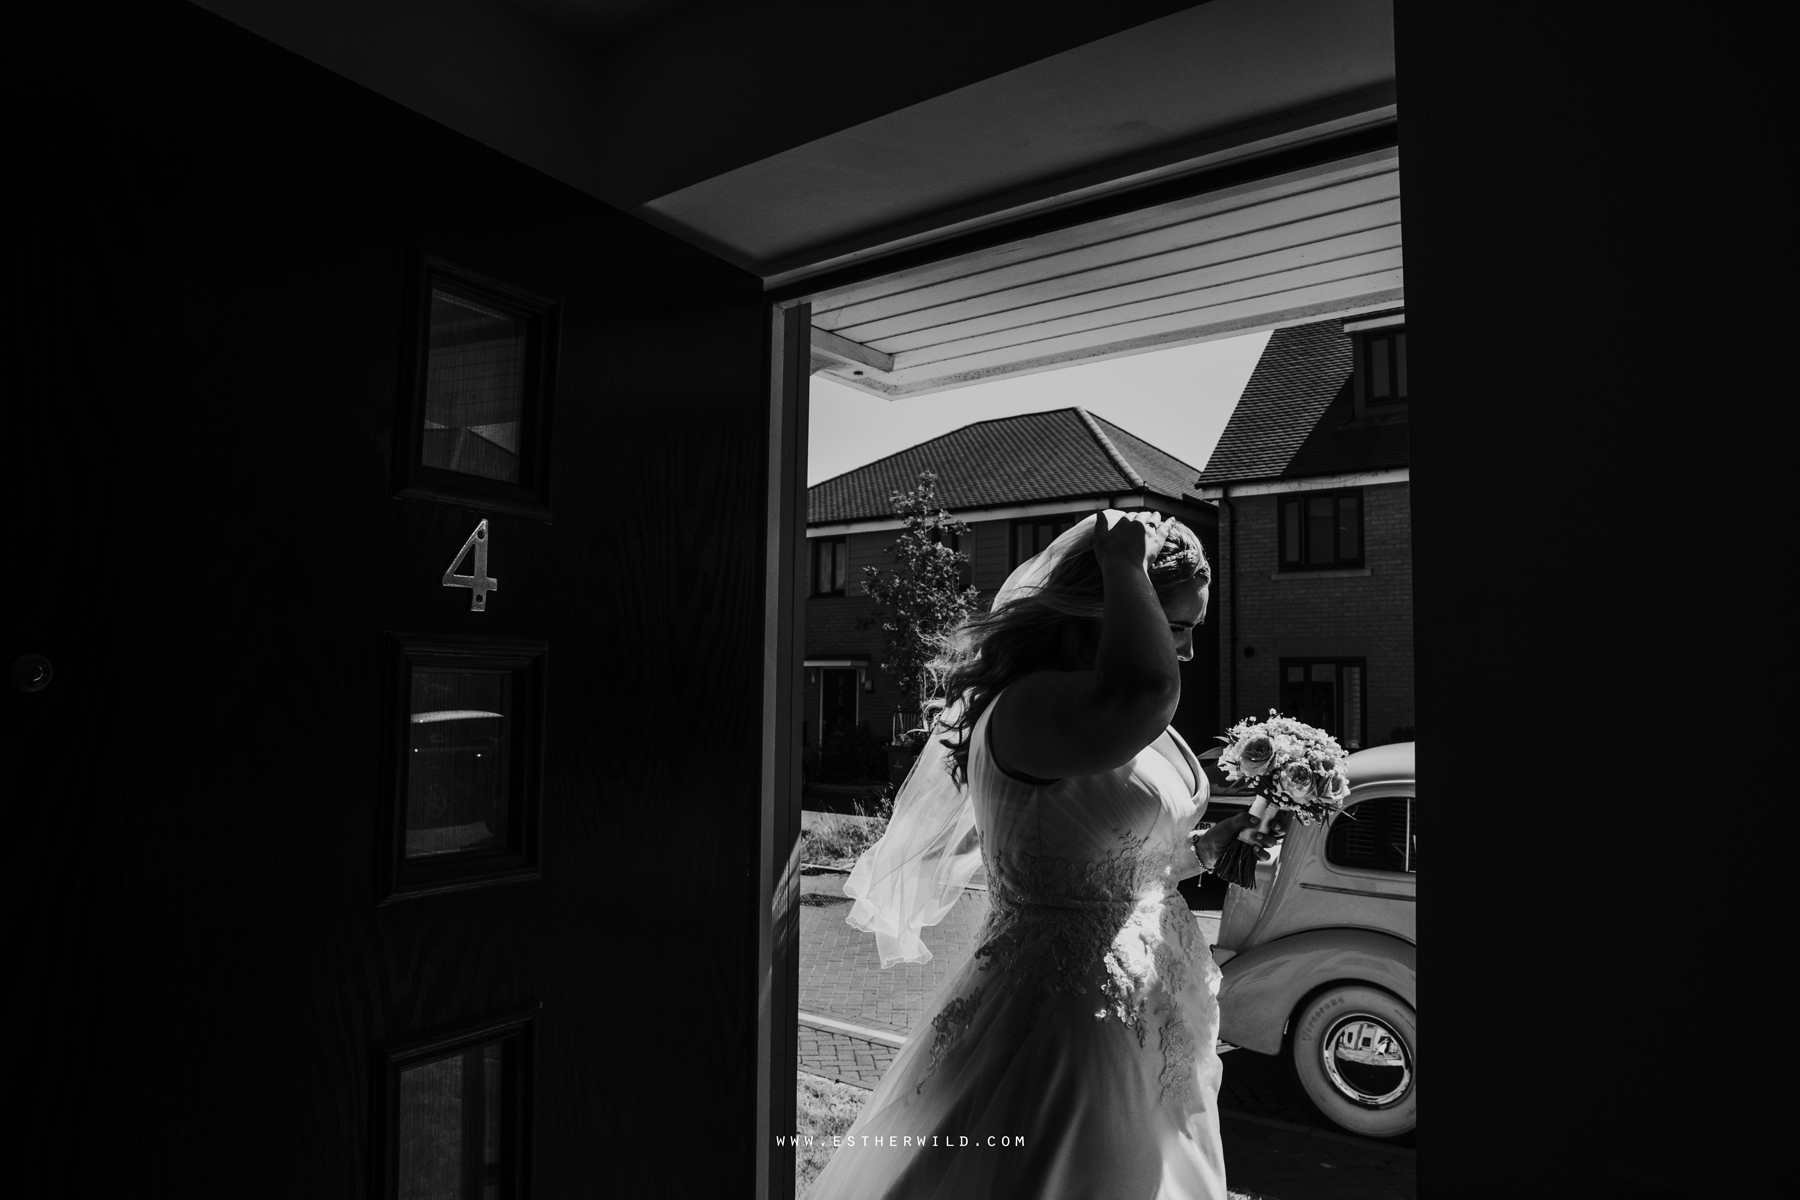 Swaffham_Wedding_Castle_Acre_Norfolk_Esther_Wild_Photographer_Wedding_Photography_3R8A0478.jpg